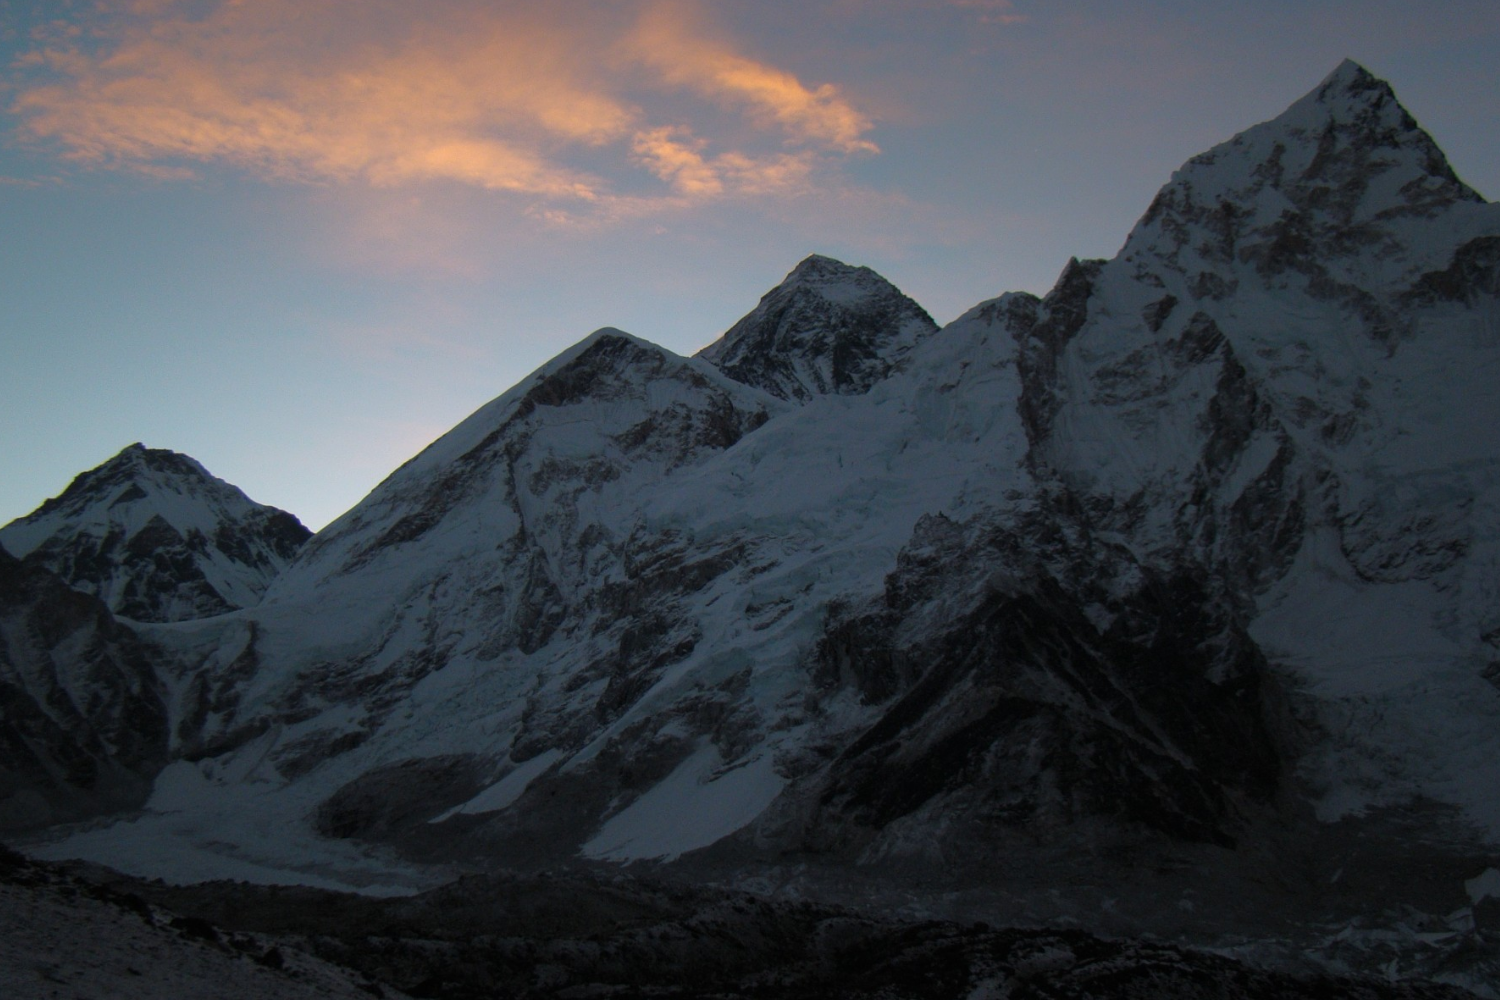 Everest and its brother Lhotse seen from Kala Pathar